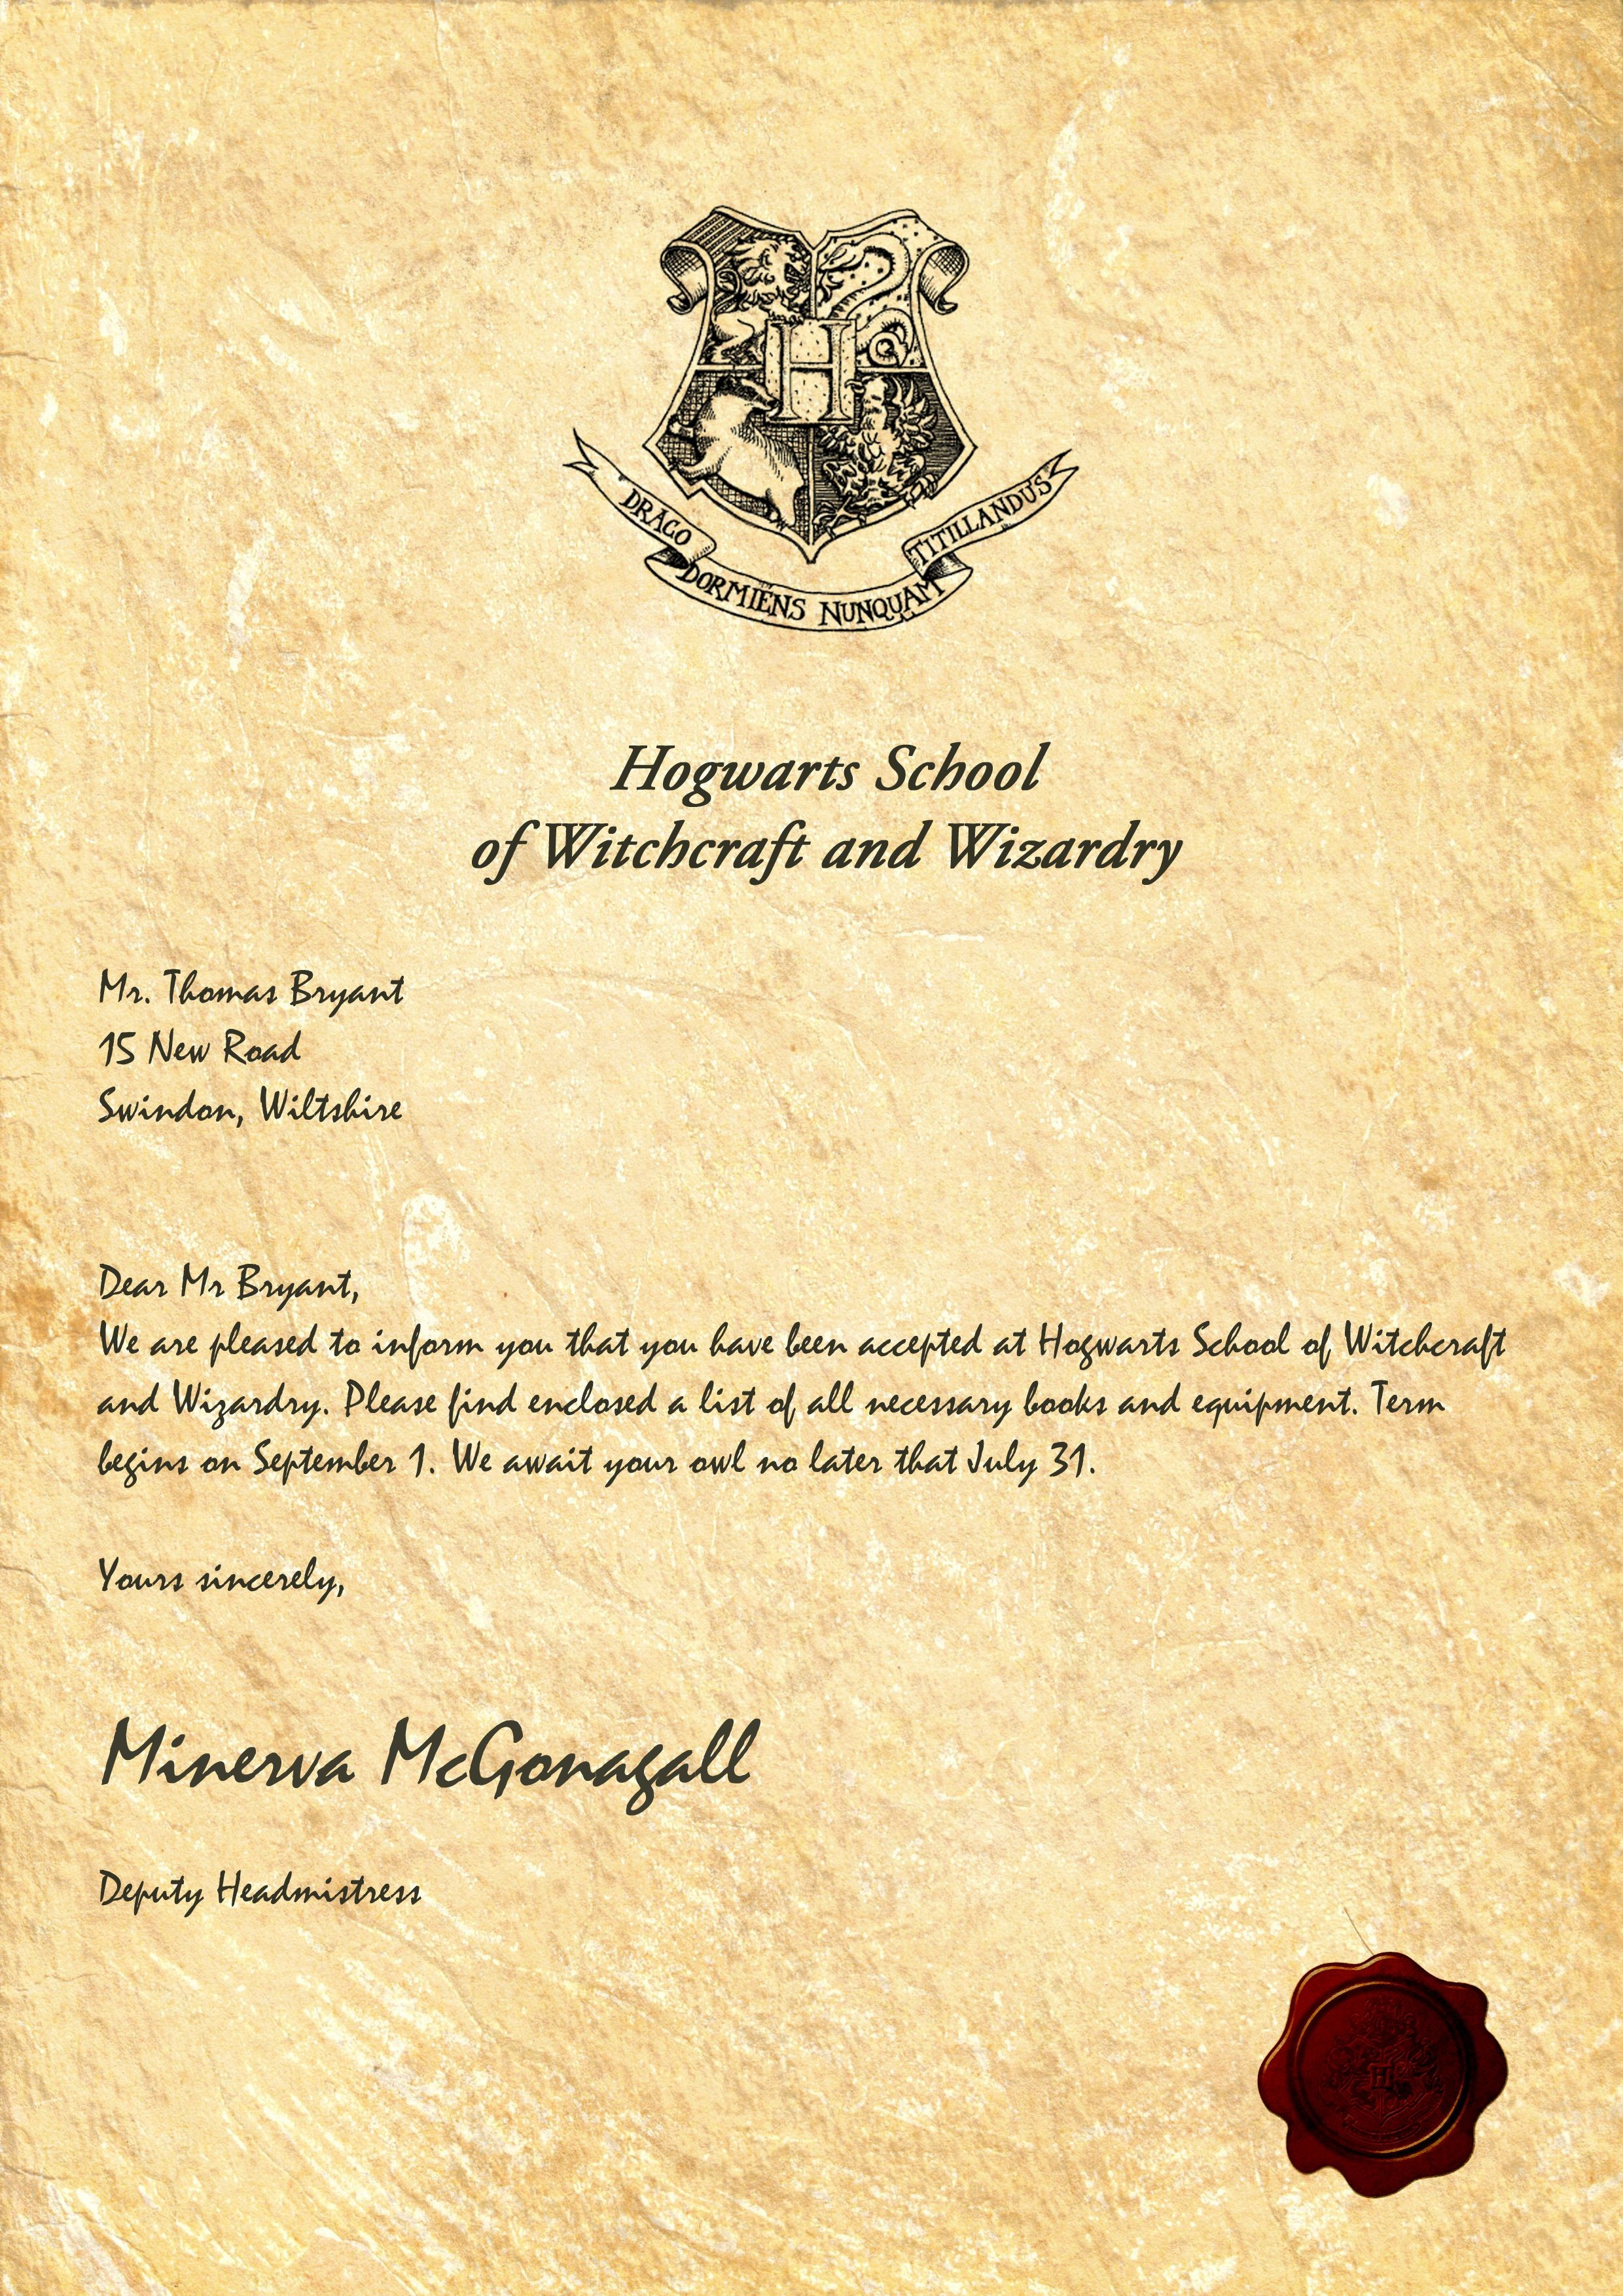 Harry potter invitation letter template samples letter cover templates harry potter invitation letter template maxwellsz